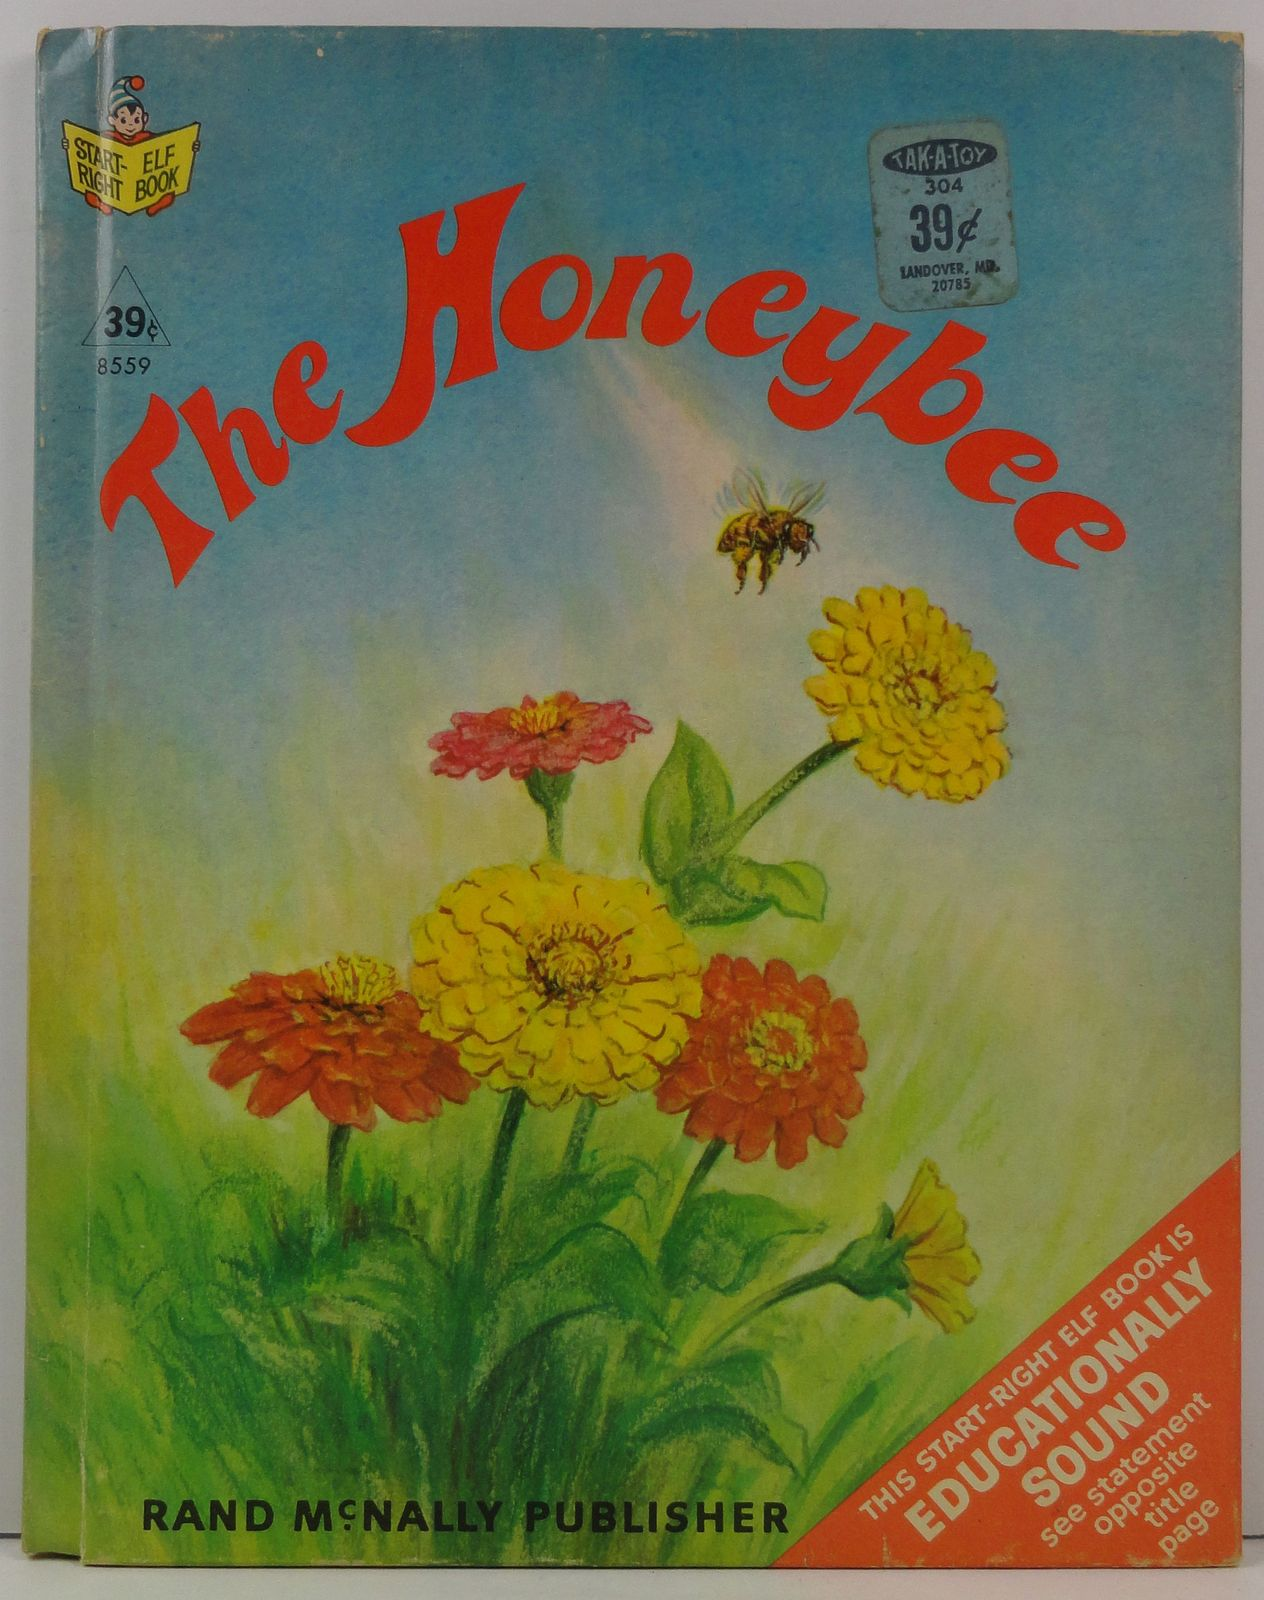 The Honeybee by Karin Clafford Farley Start Right Elf Book